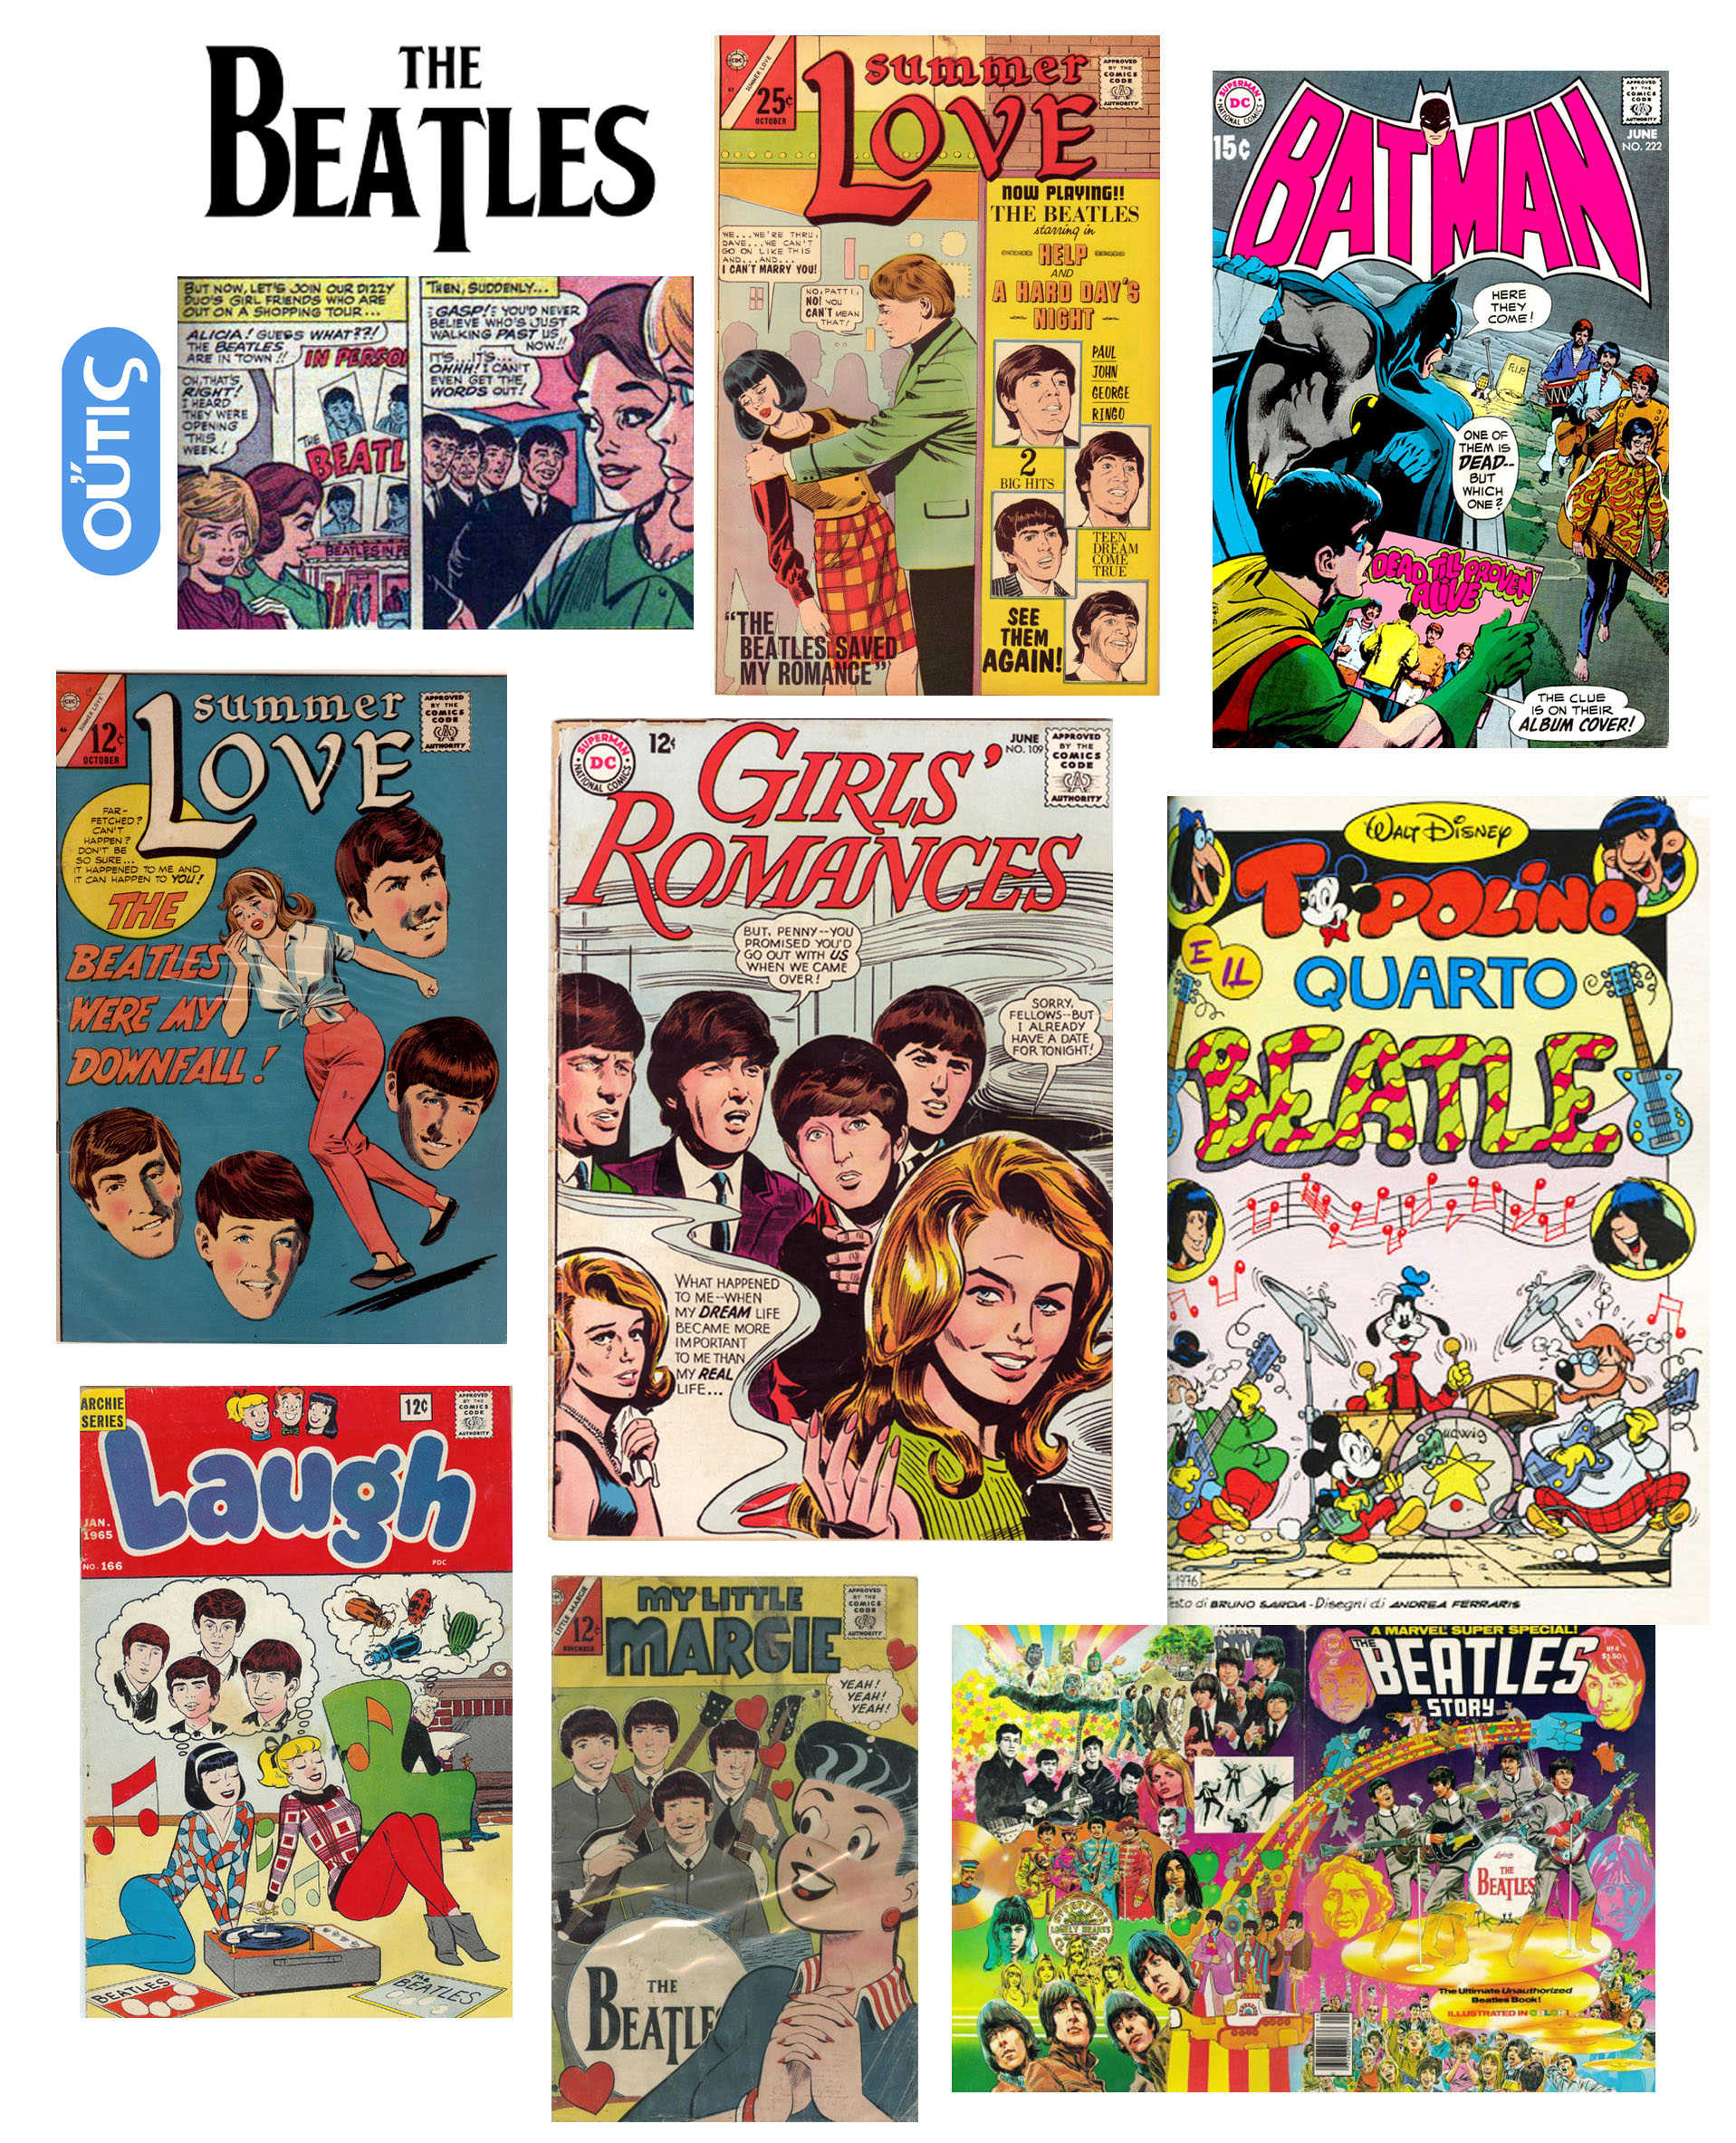 Read the Beatles comics and play the guitar like them